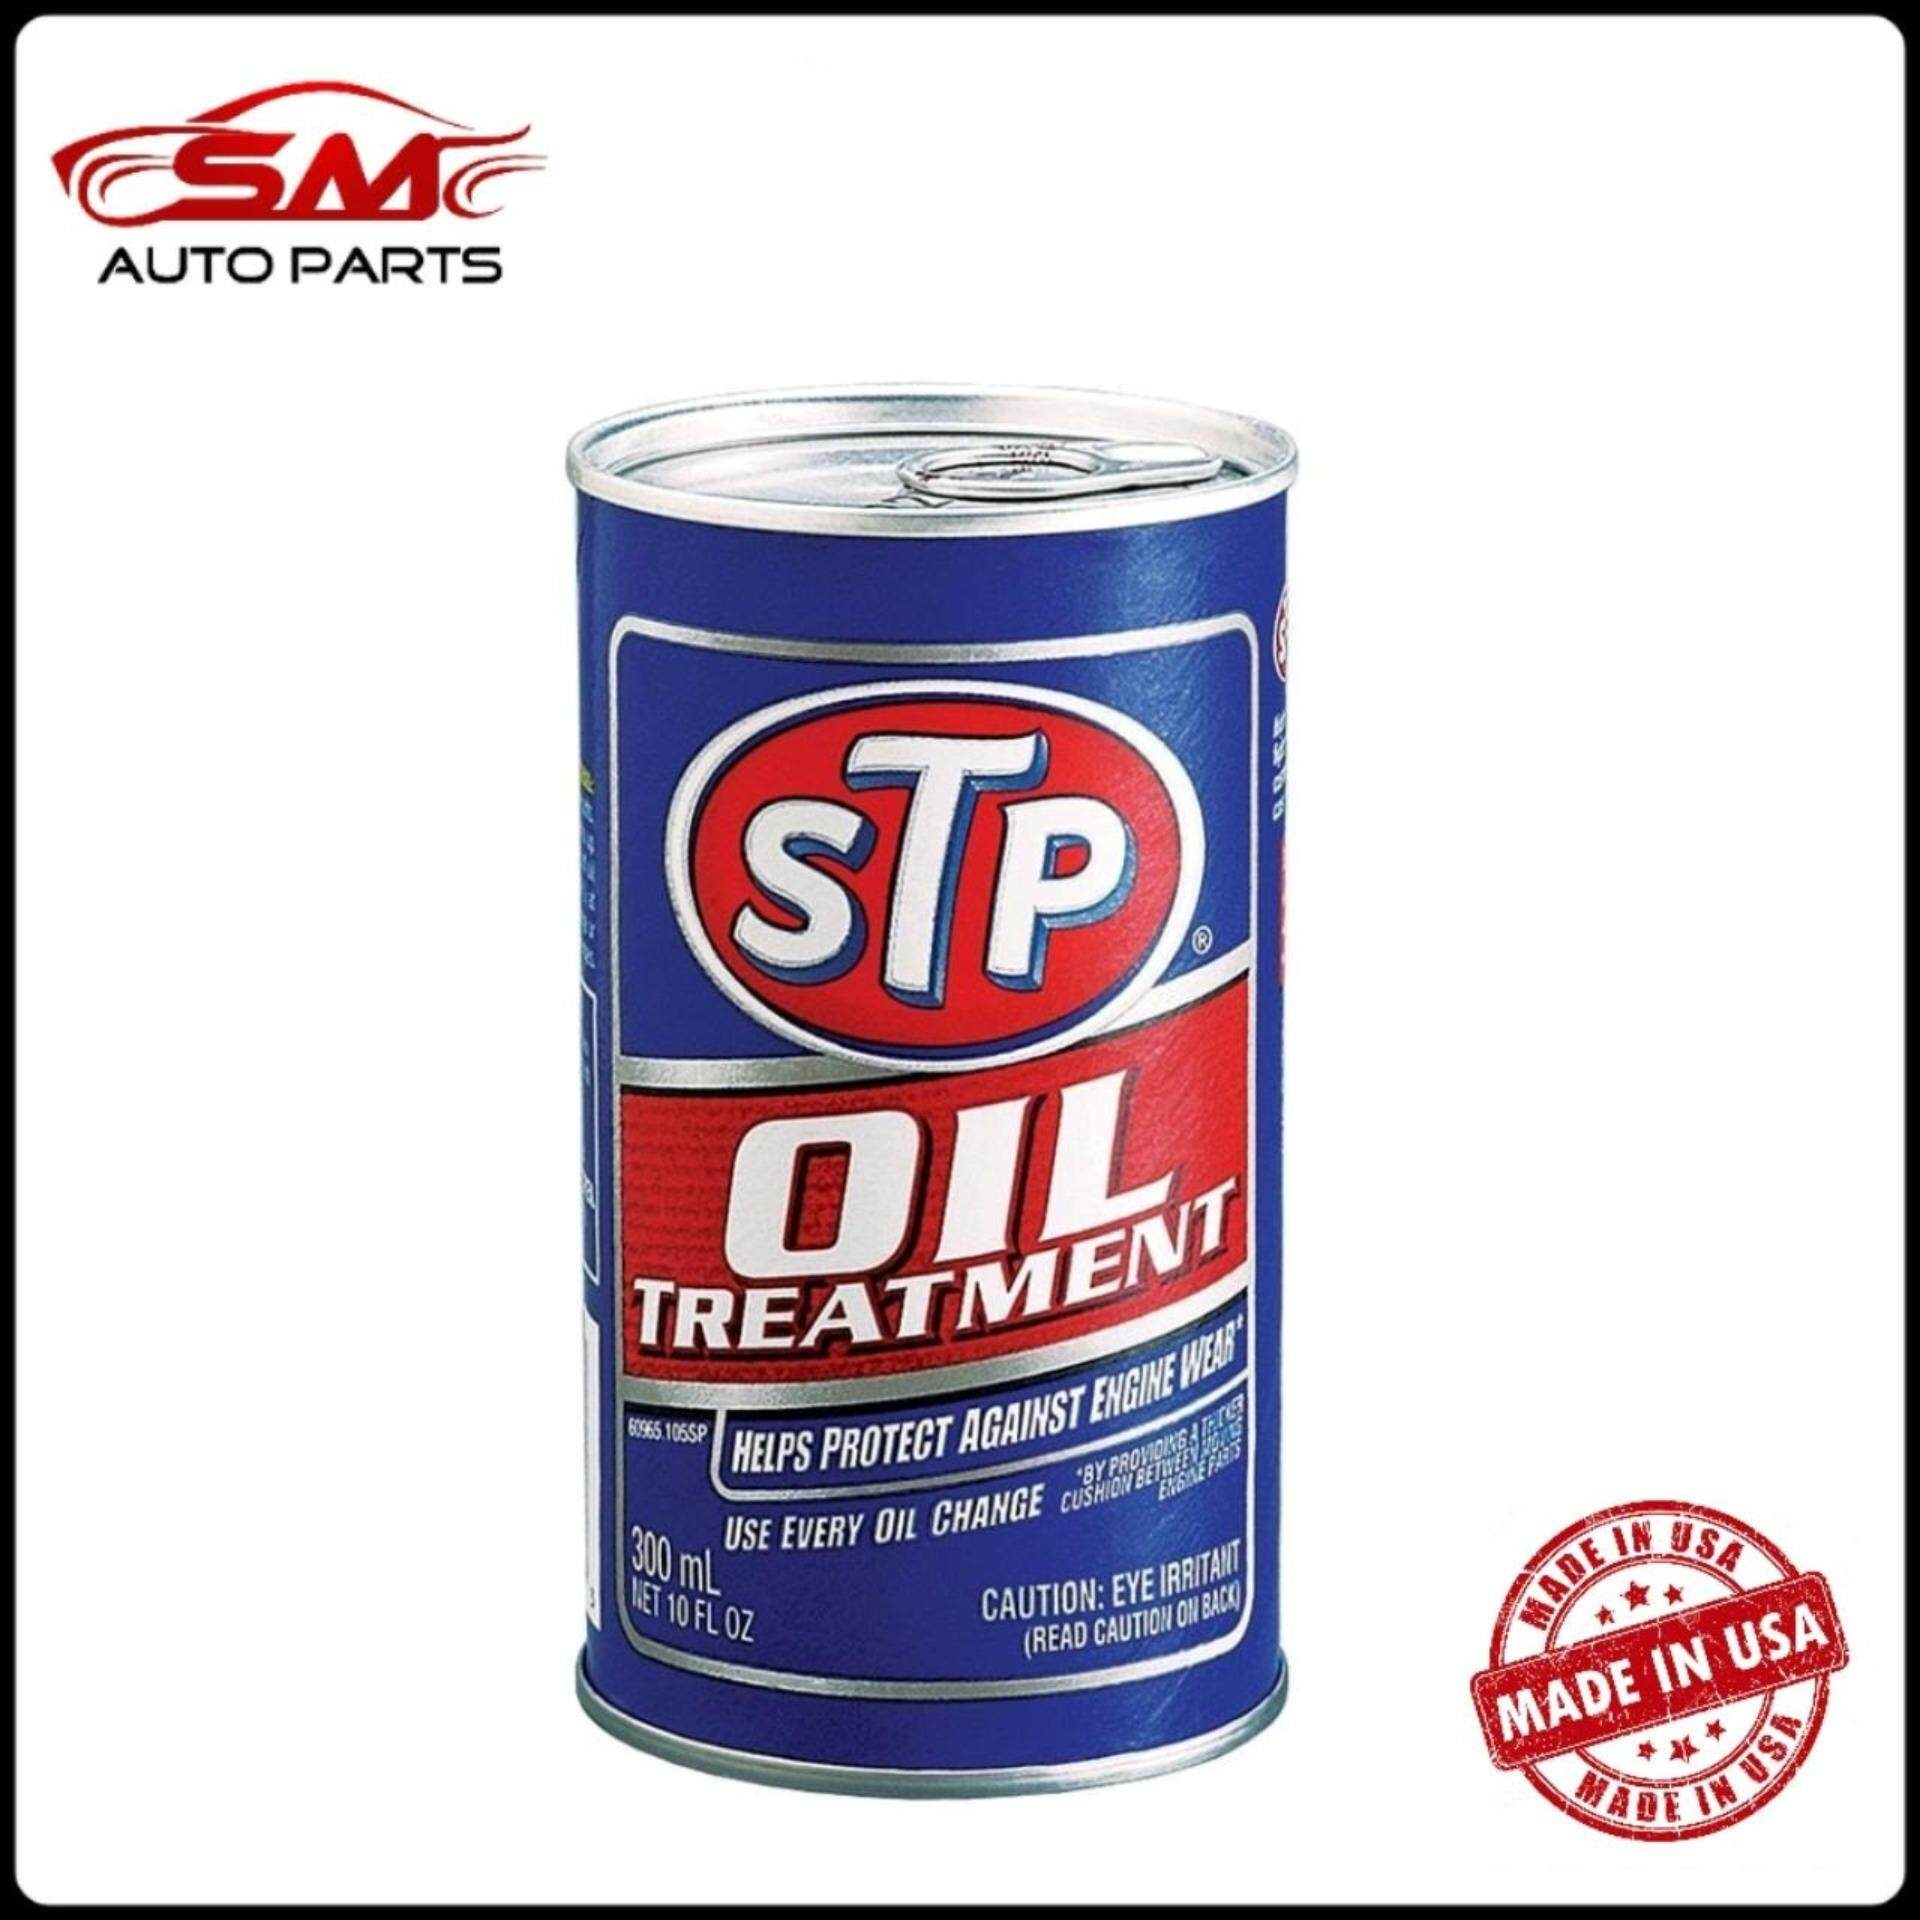 STP Oil Treatment 300ml ( Made in USA )